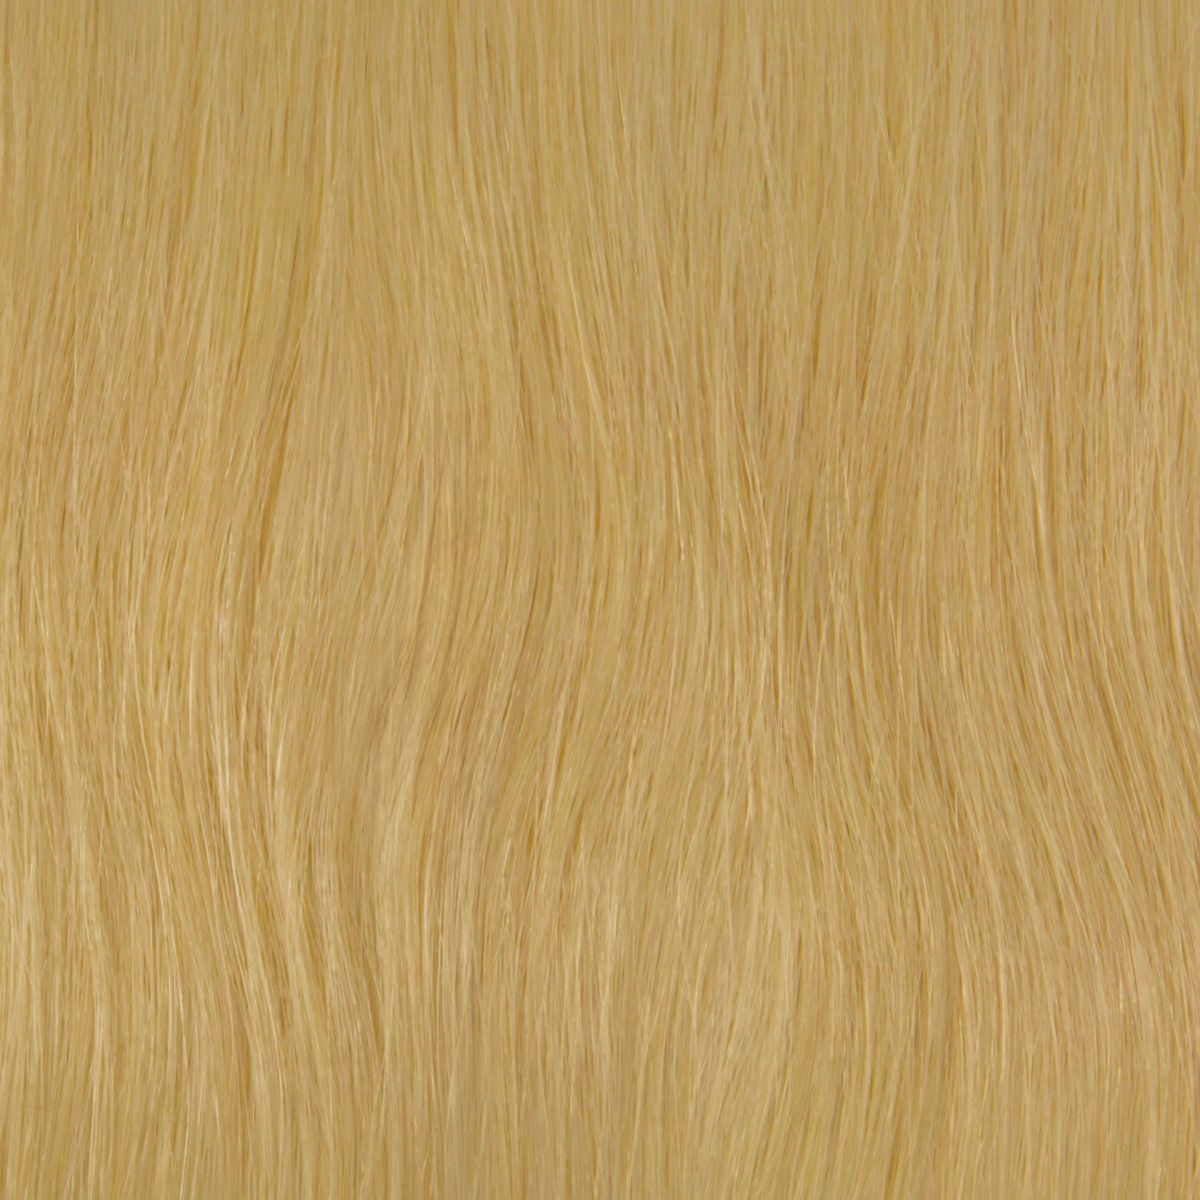 Afbeelding van Balmain Tape Extensions - natural straight - 40cm - 20 tapes - #L10